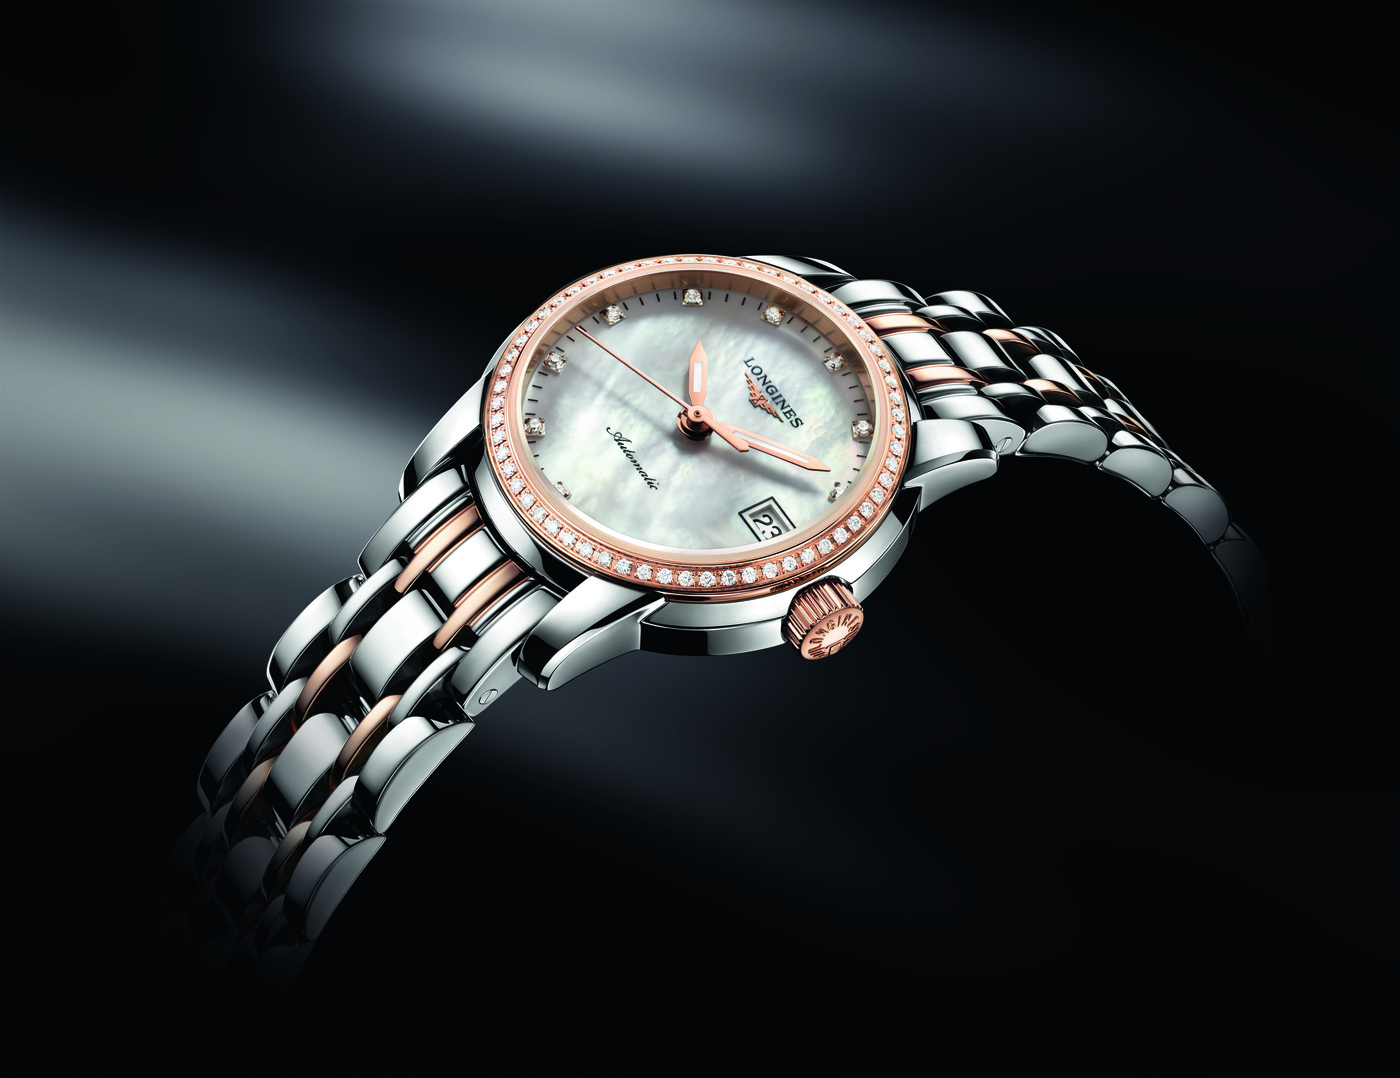 Longines Flat Racing Event: Racing and elegance at the Prix de Diane Longines – Sunday, 17th June 2012 at 5